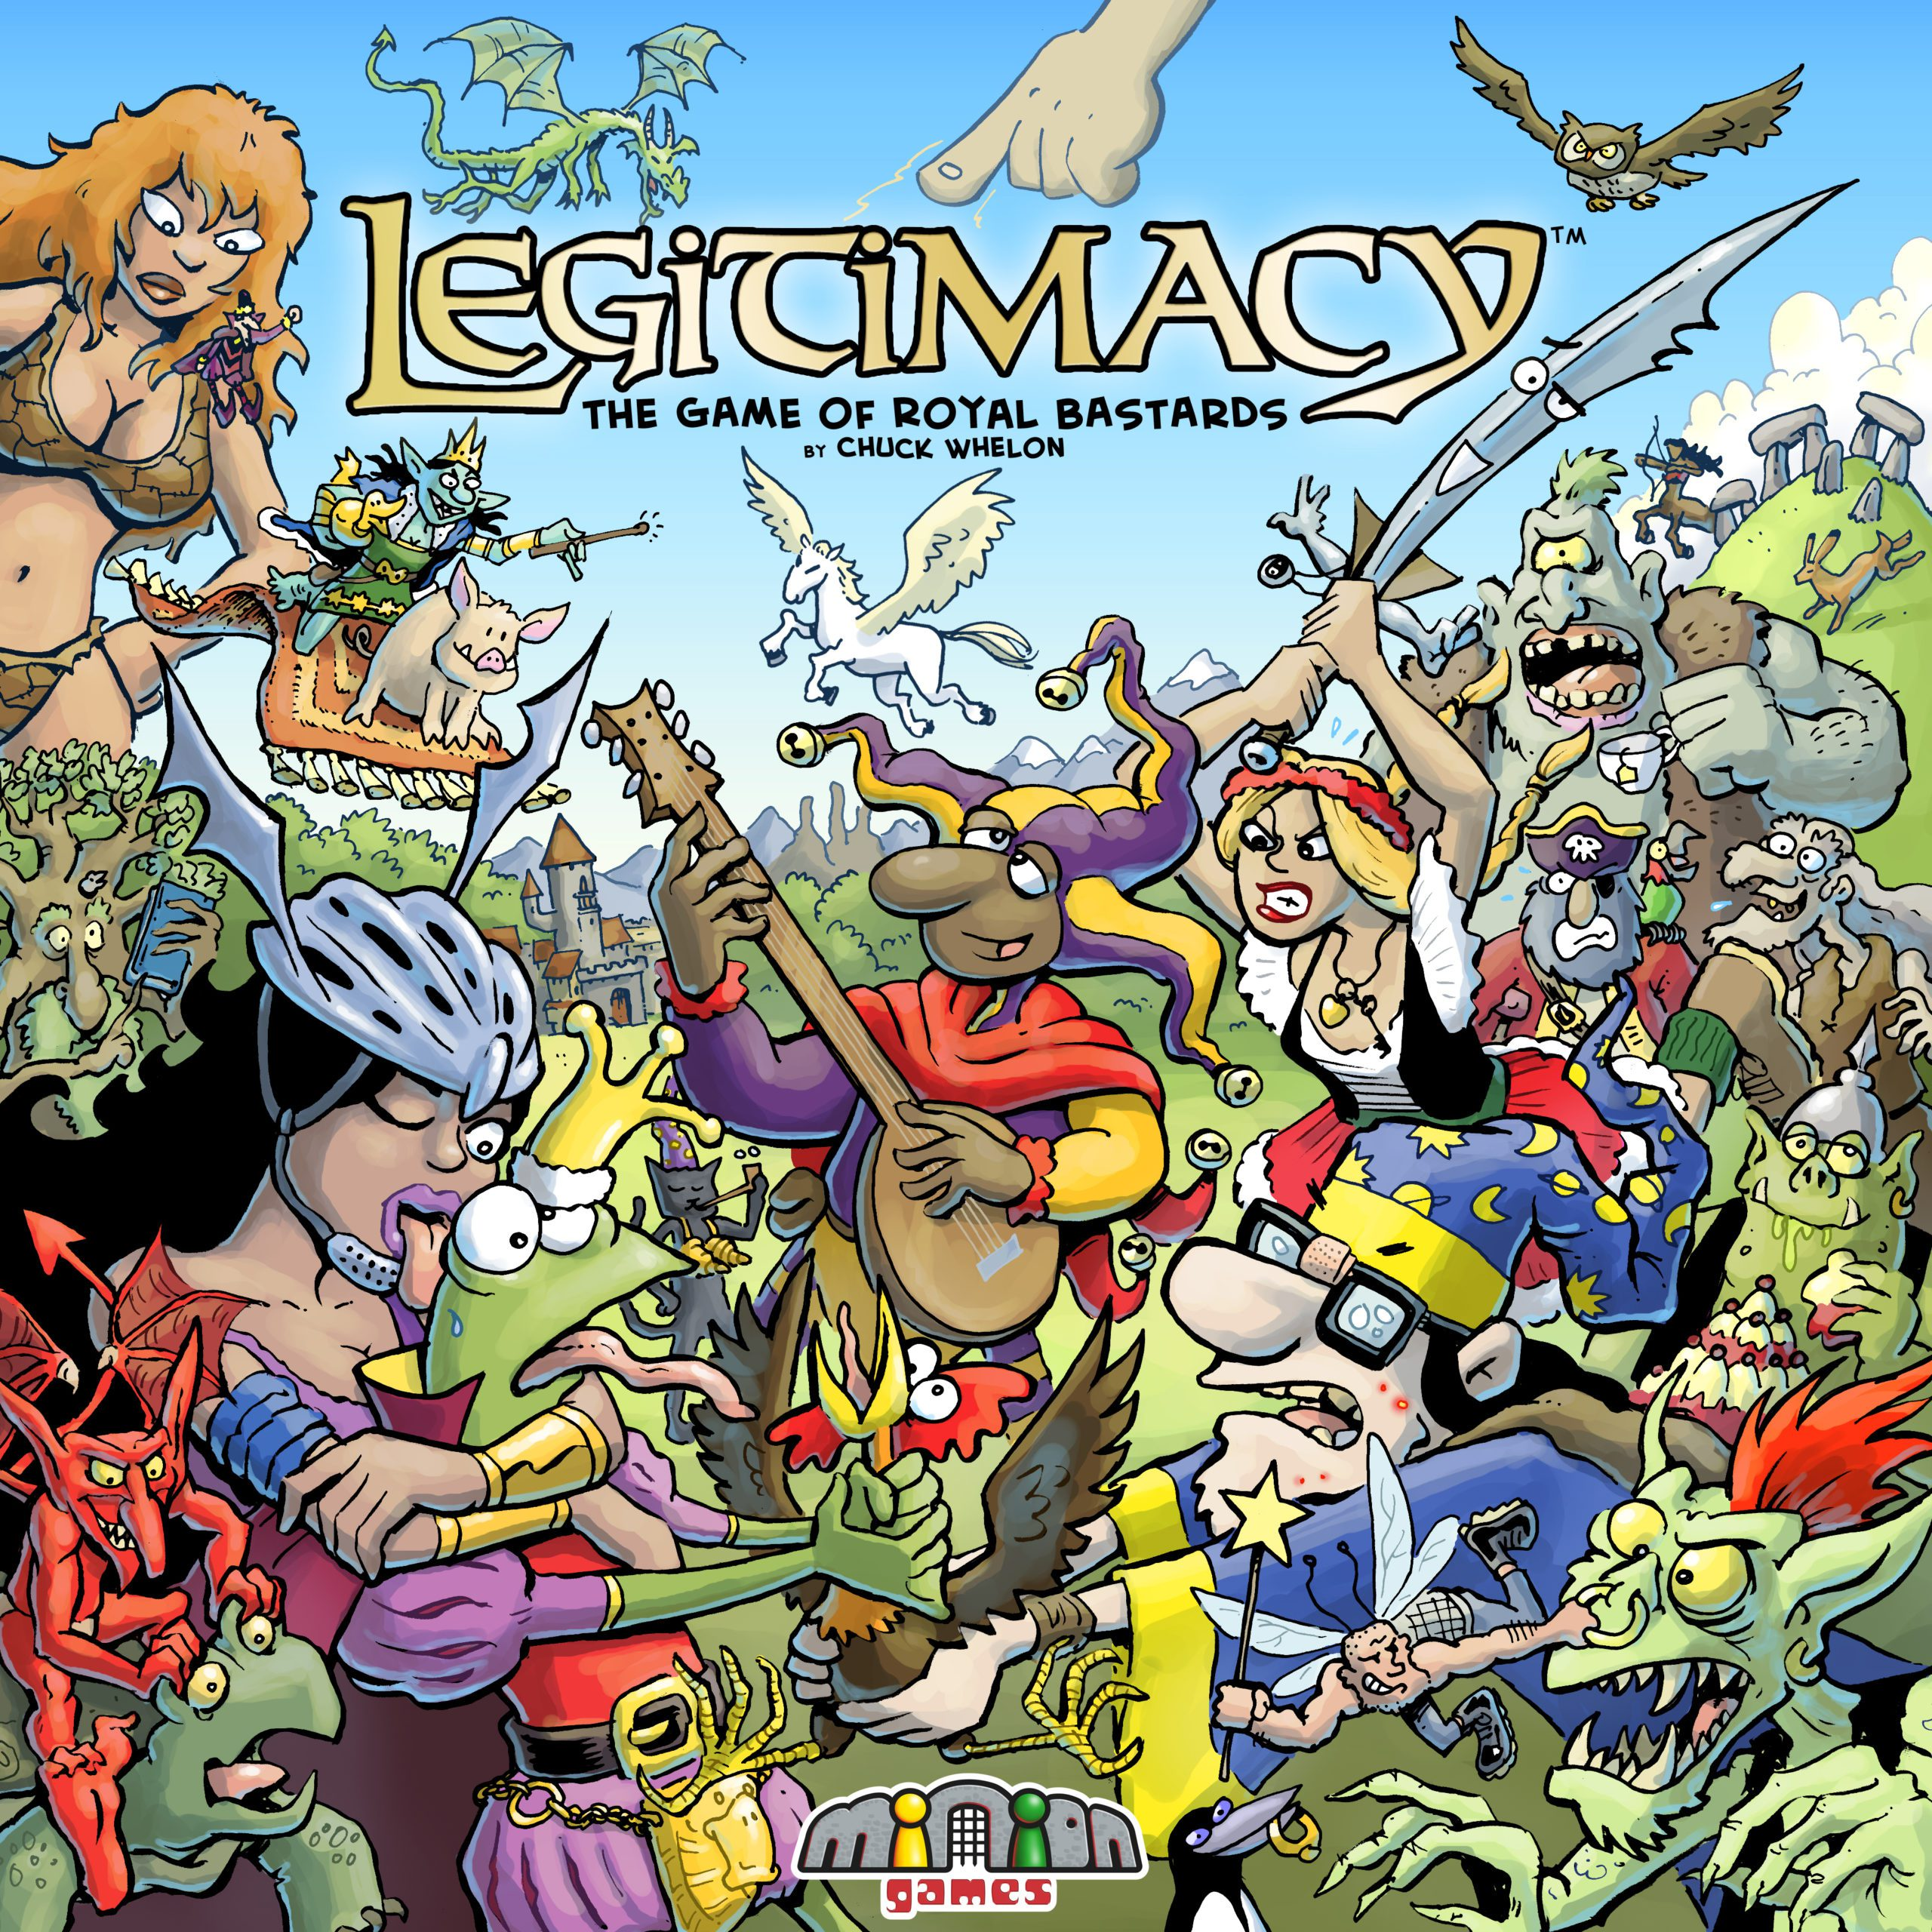 Legitimacy Boardgame Box Cover Art